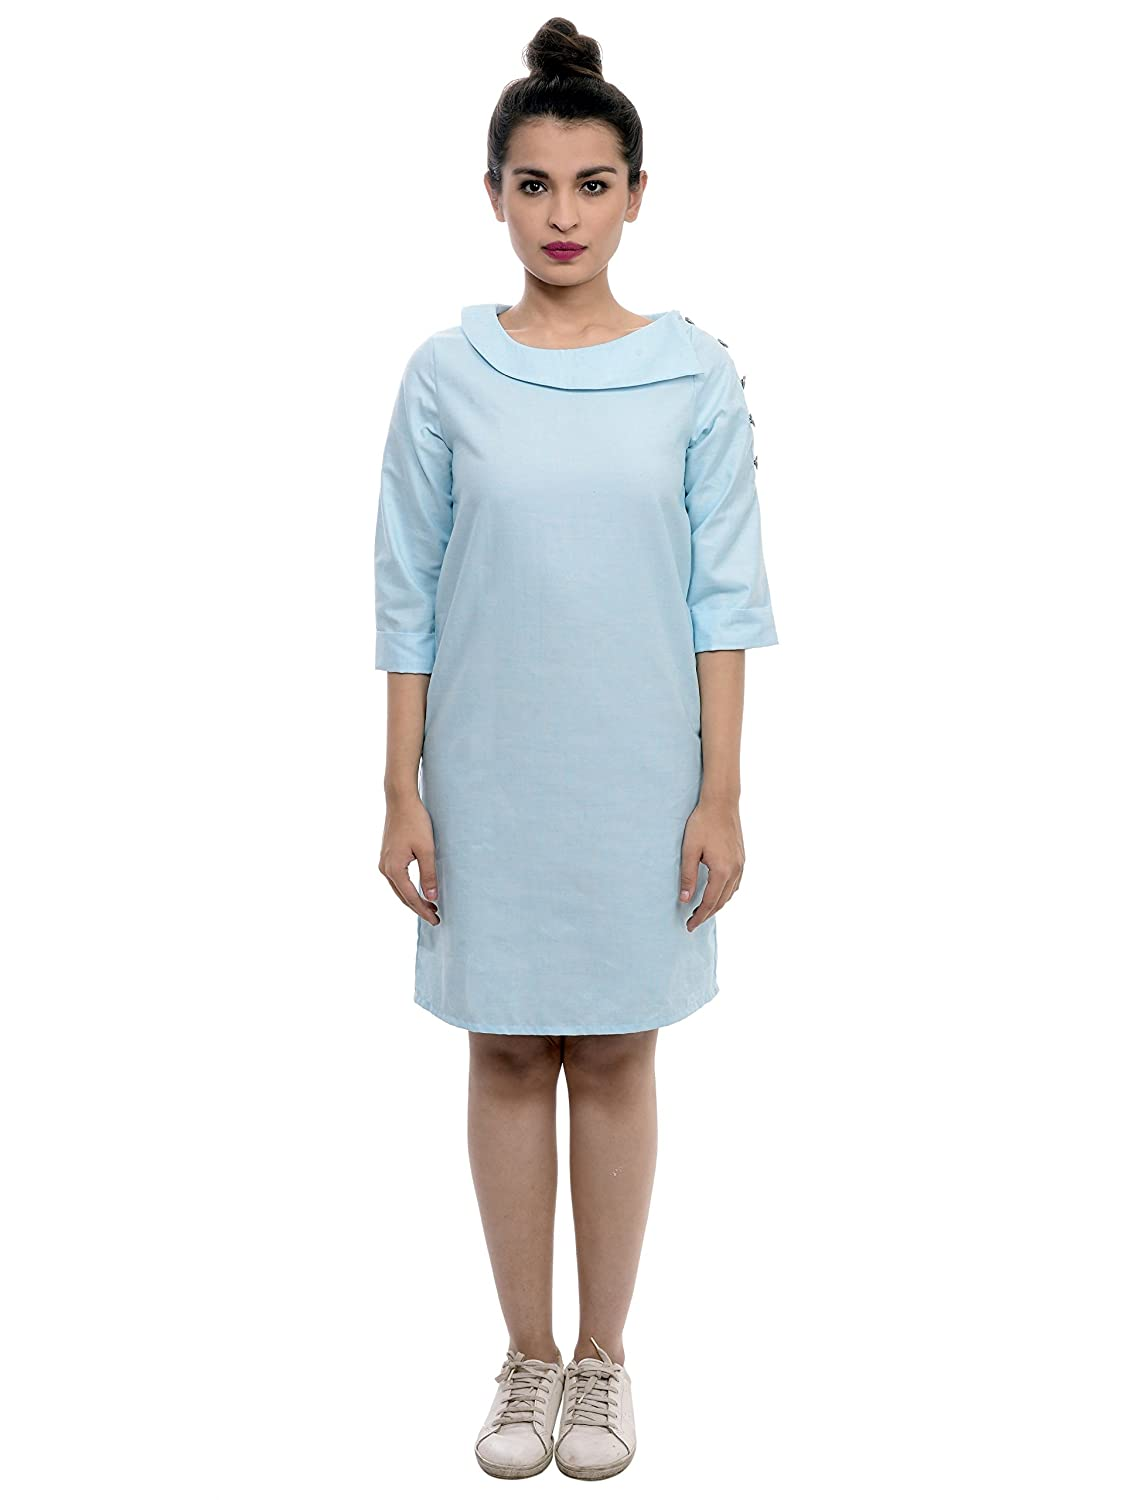 a7f54ac424 SASSYSTRIPES Never Try Hard Powder Blue Dress with Asymmetrical Neckline:  Amazon.in: Clothing & Accessories